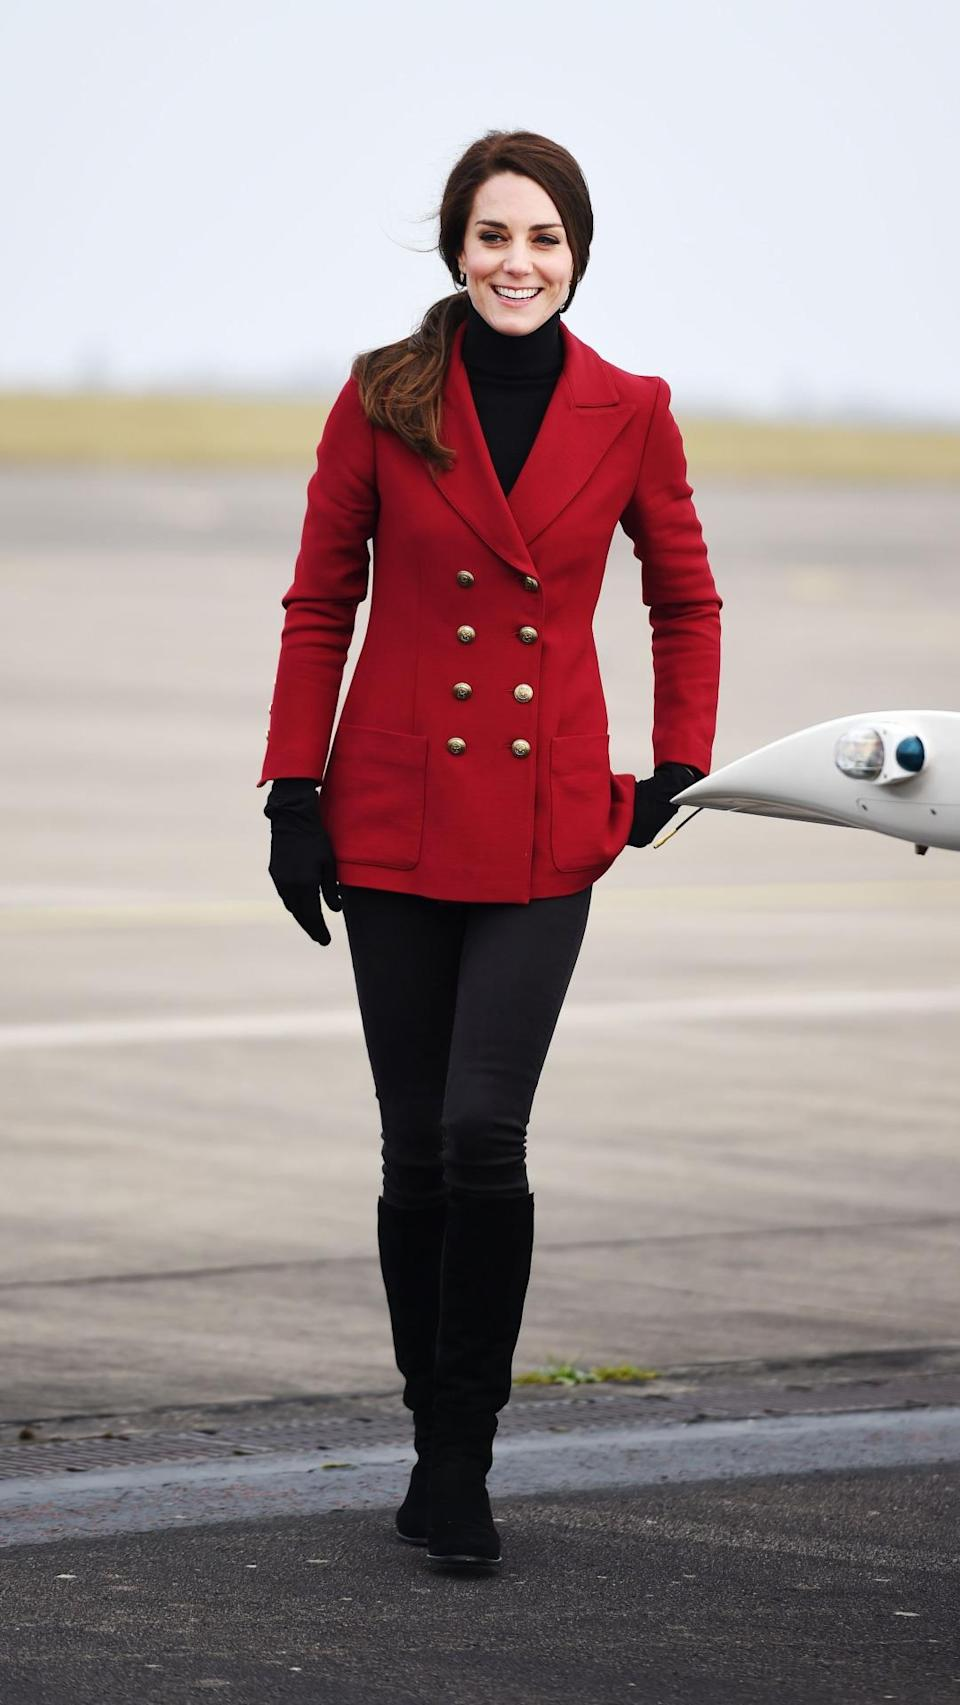 <p>The Duchess spent Valentine's Day with young Air Cadets at an RAF base near Peterborough. She suitably wore a military-inspired look featuring a double-breasted red jacket by Philosophy di Lorenzo Serafini and her favourite suede Stuart Weitzman boots. </p><p><i>[Photo: PA]</i> </p>